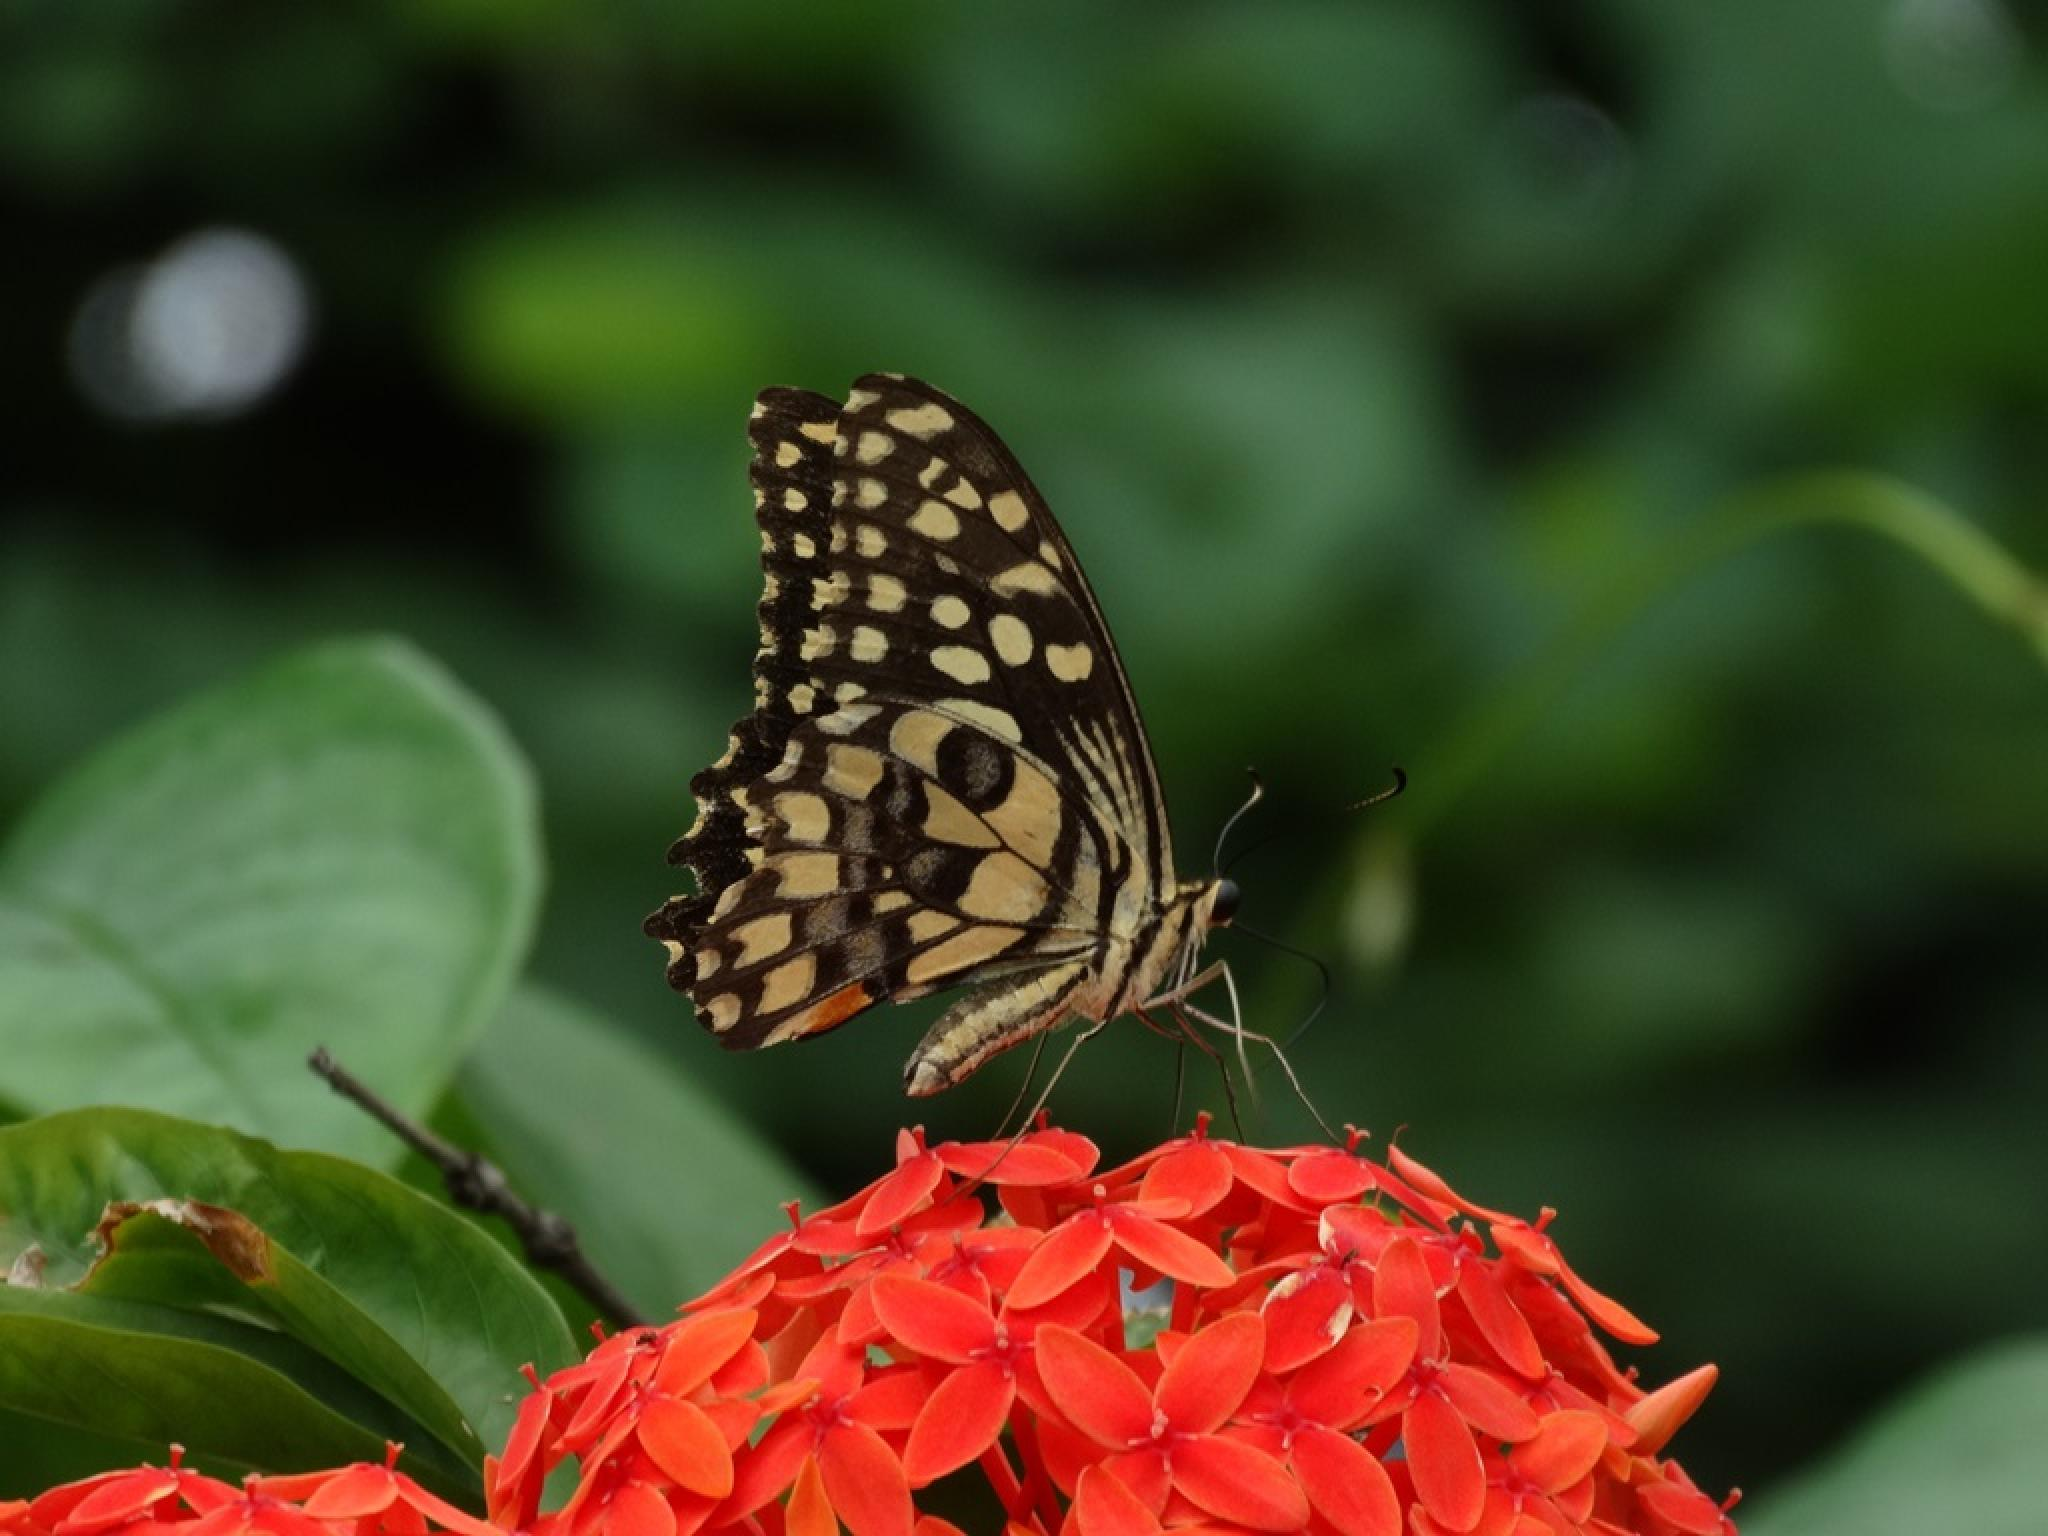 Butterfly by Prasenjit Das